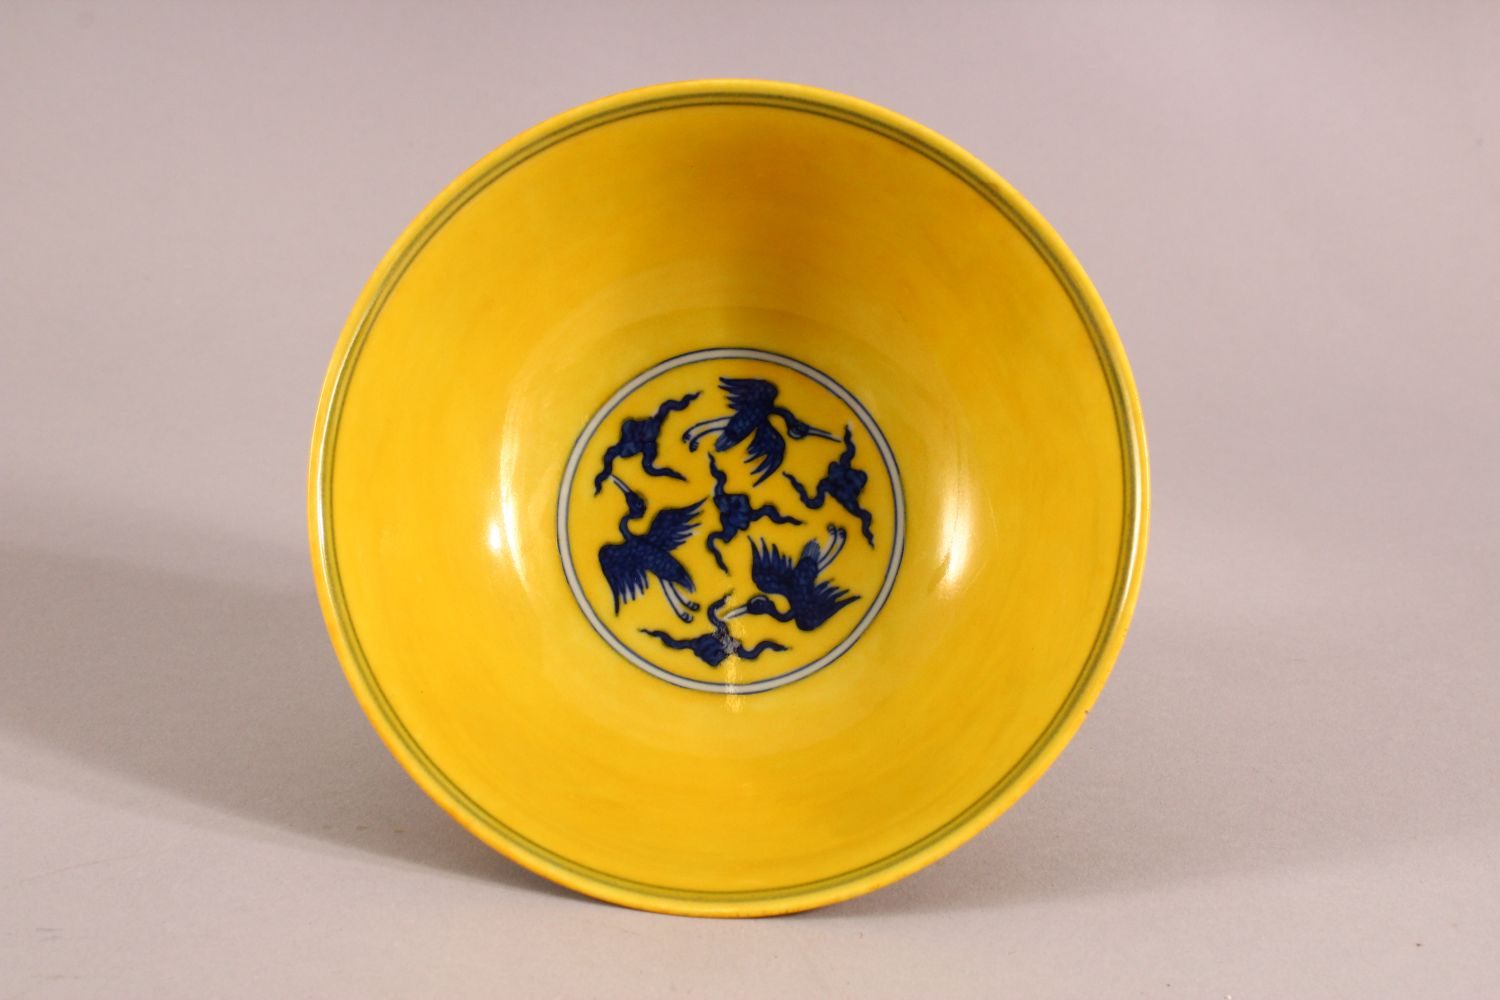 A CHINESE YELLOW GROUND PORCELAIN STEM CUP, decorated with cranes in flight, the interior of the - Image 4 of 6